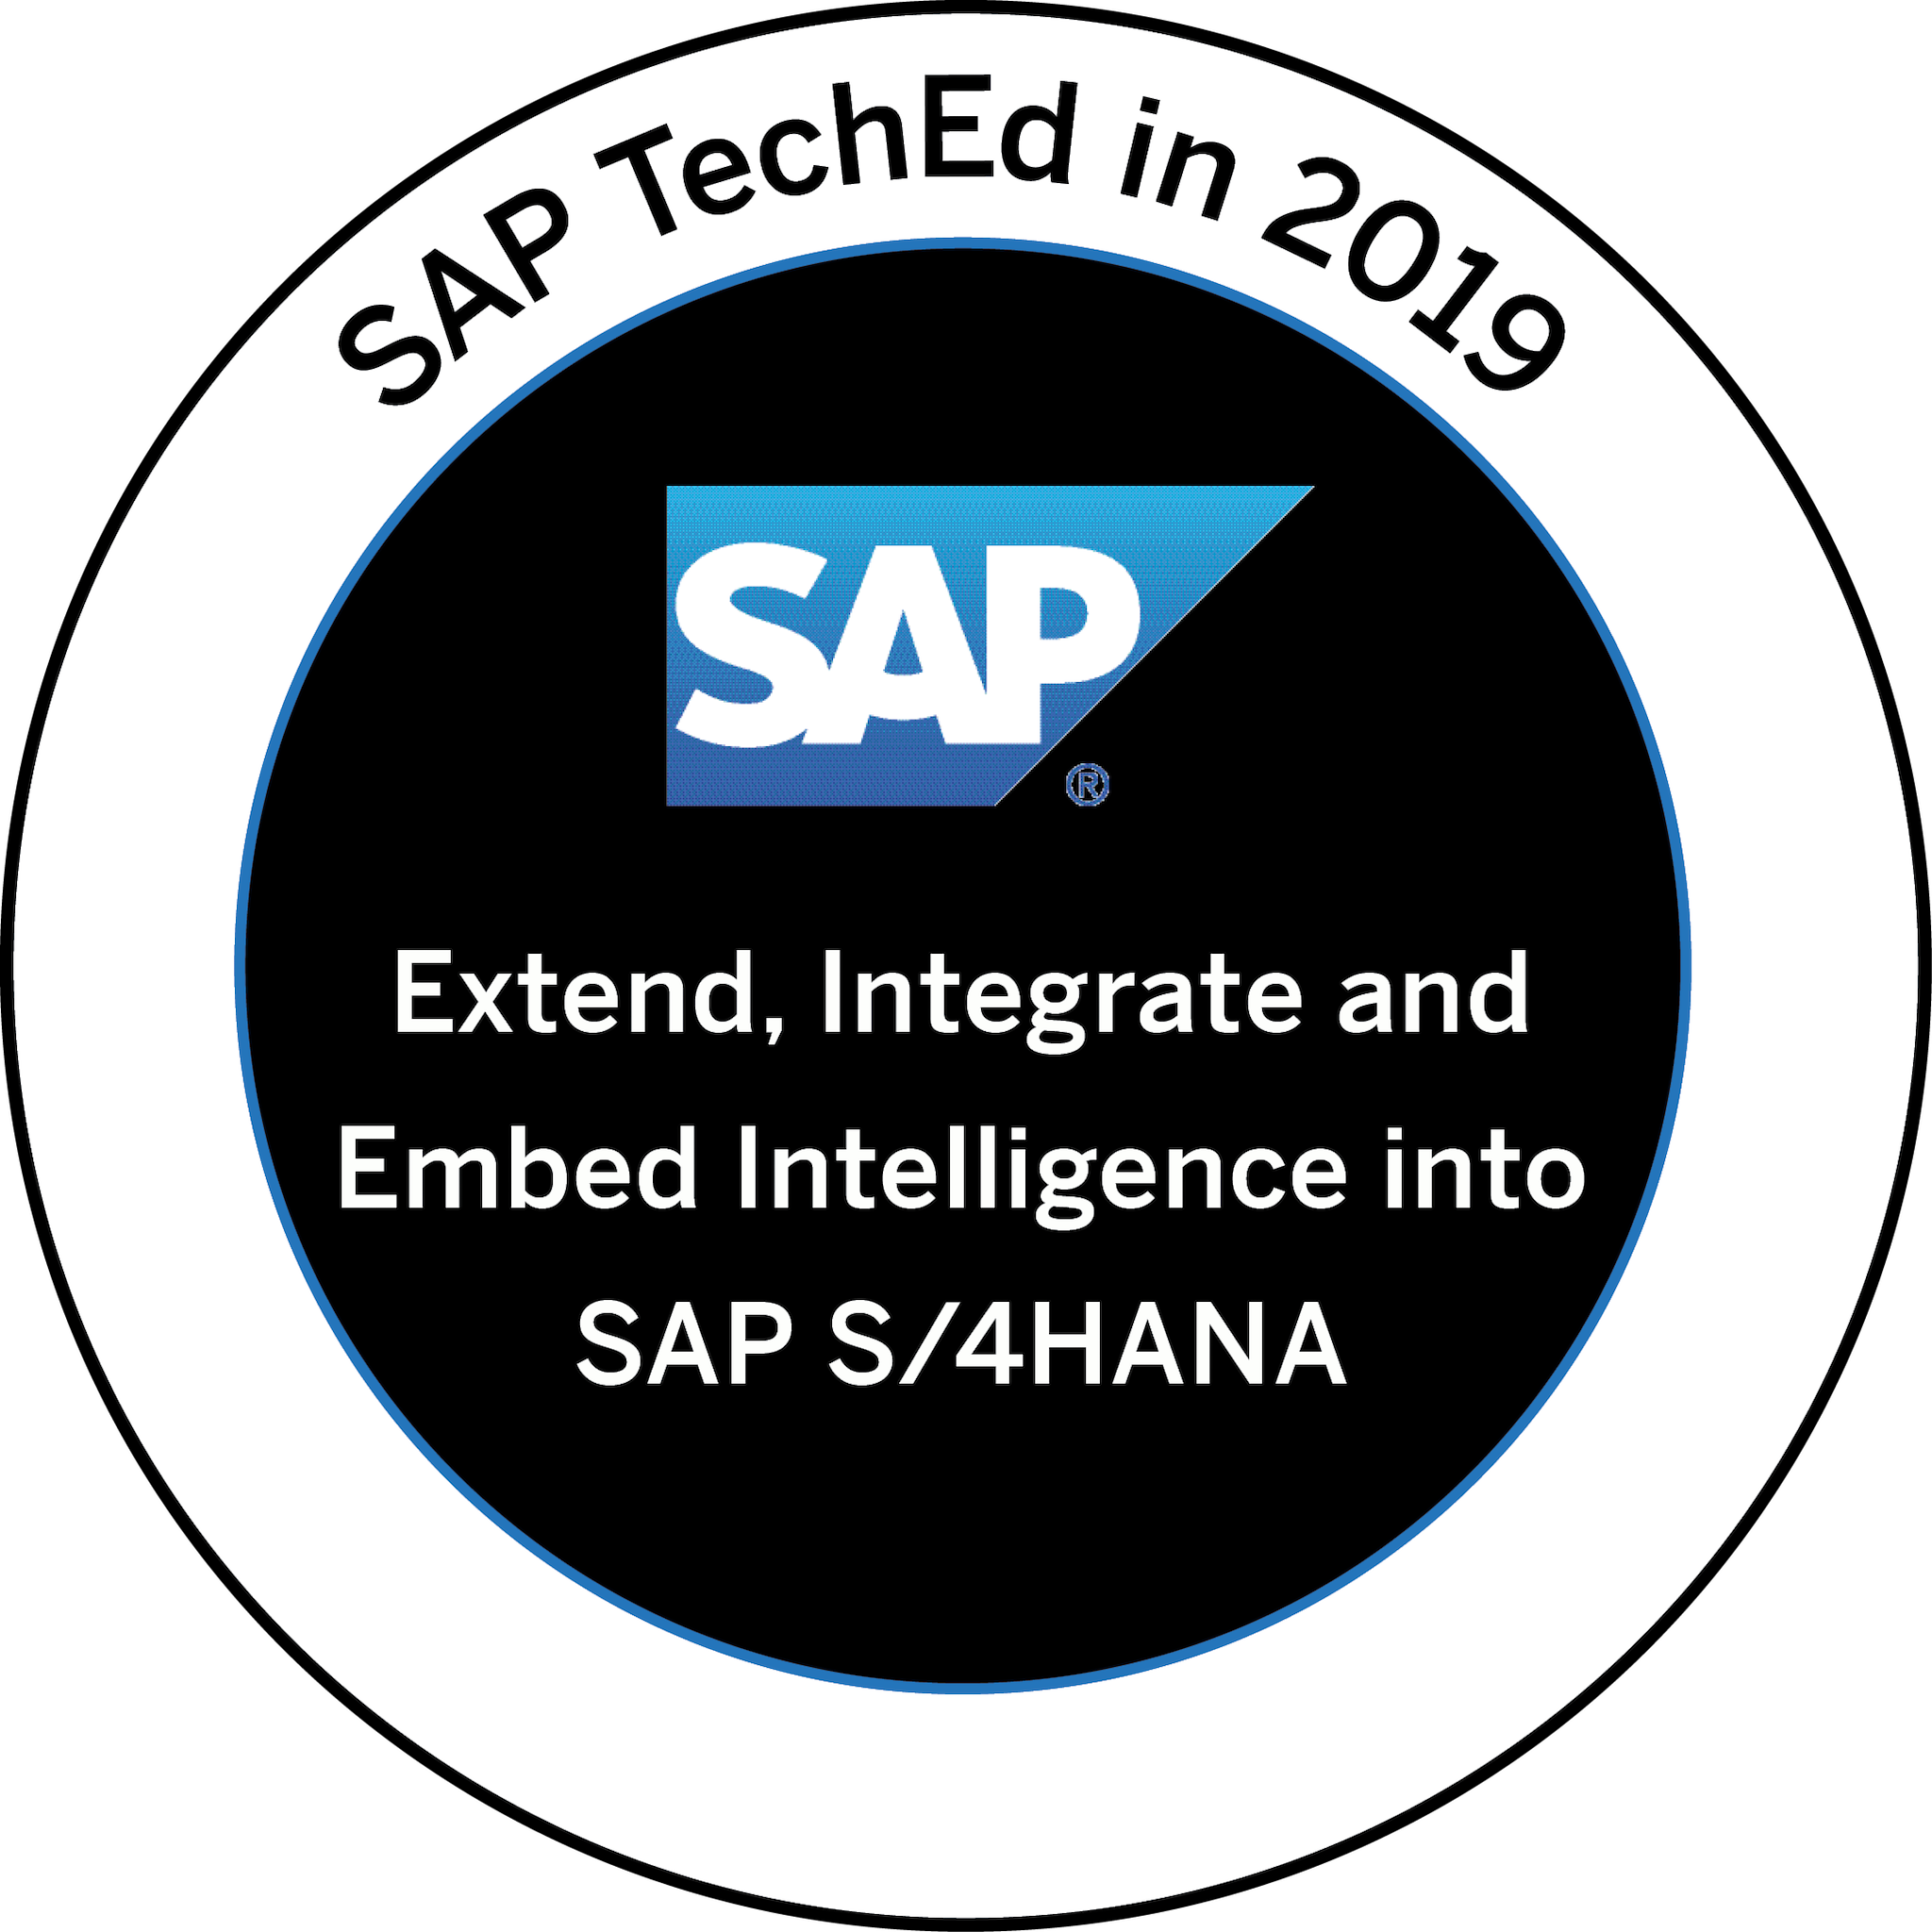 SAP TechEd 2019 - Extend - Integrate and Embed Intelligence into SAP S/4HANA